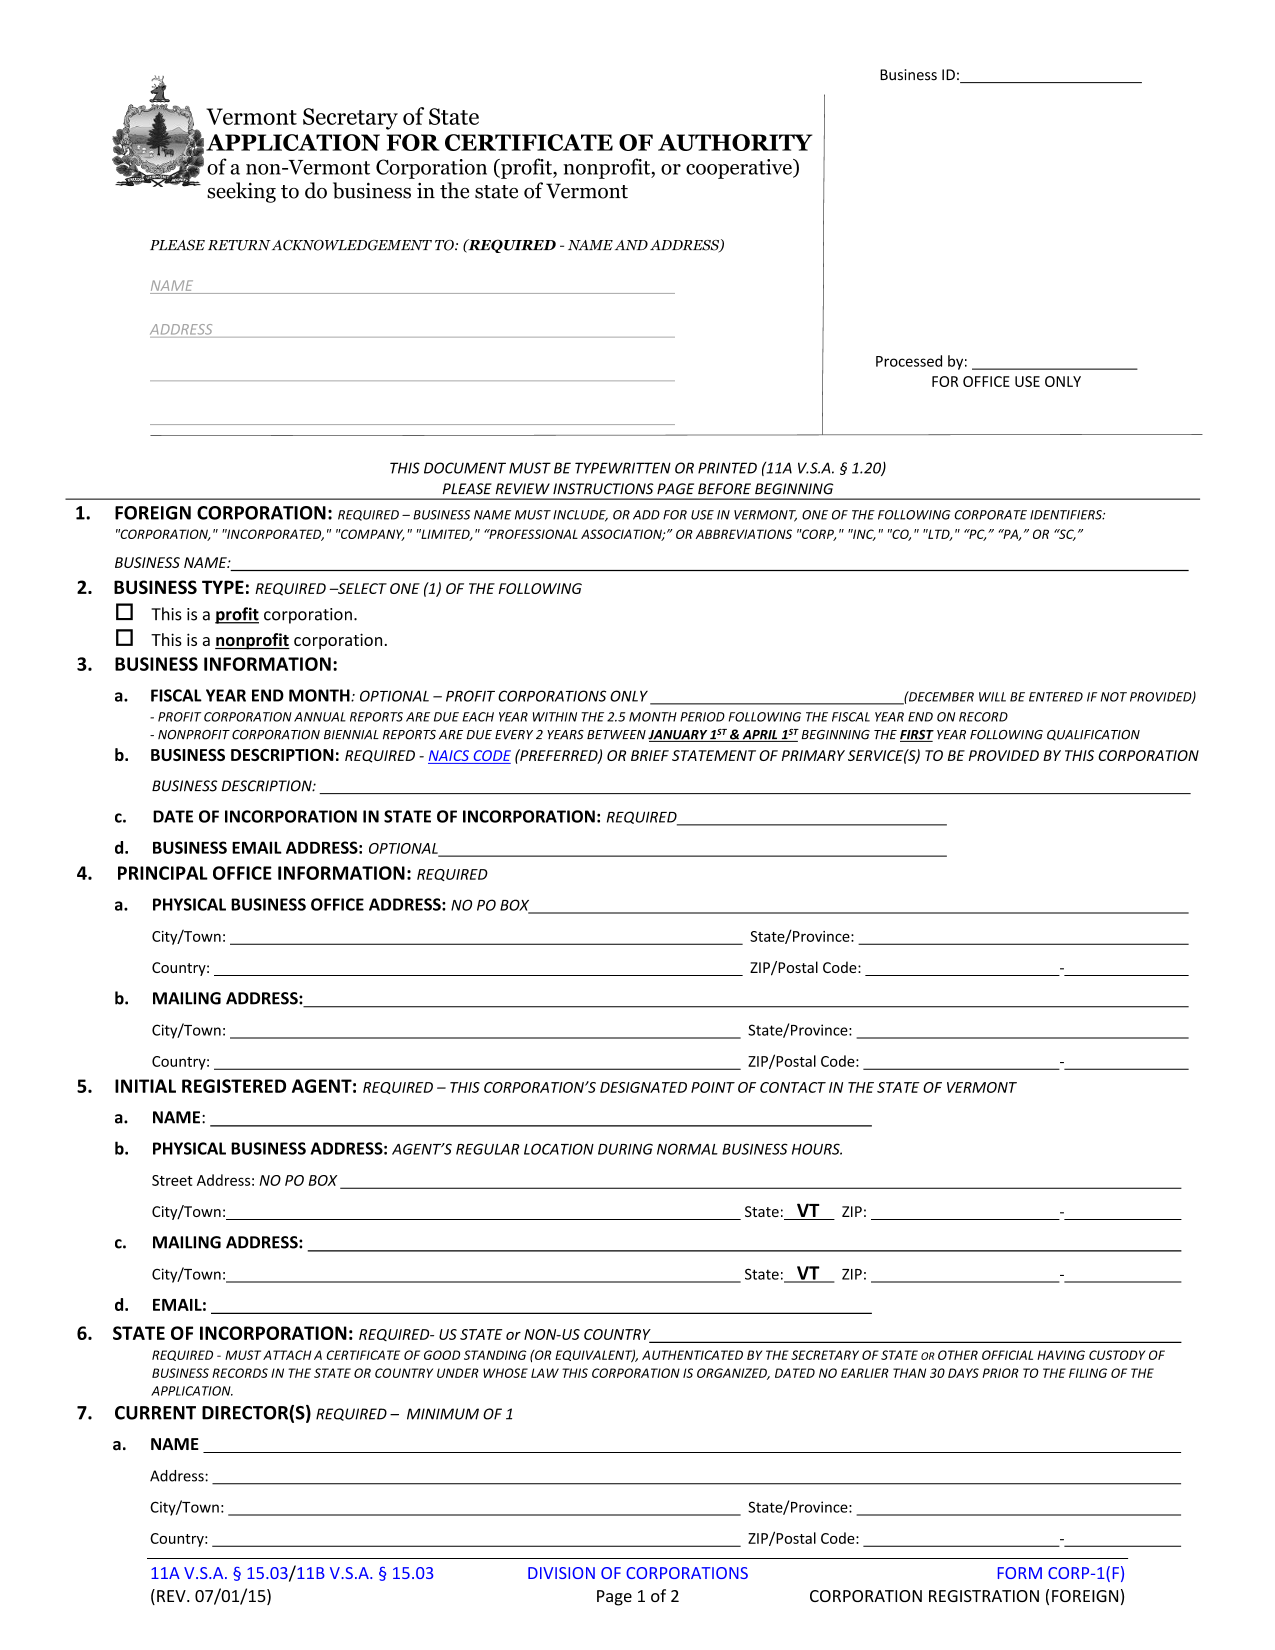 vermont-foreign-nonprofit-application-for-certificate-of-authority-